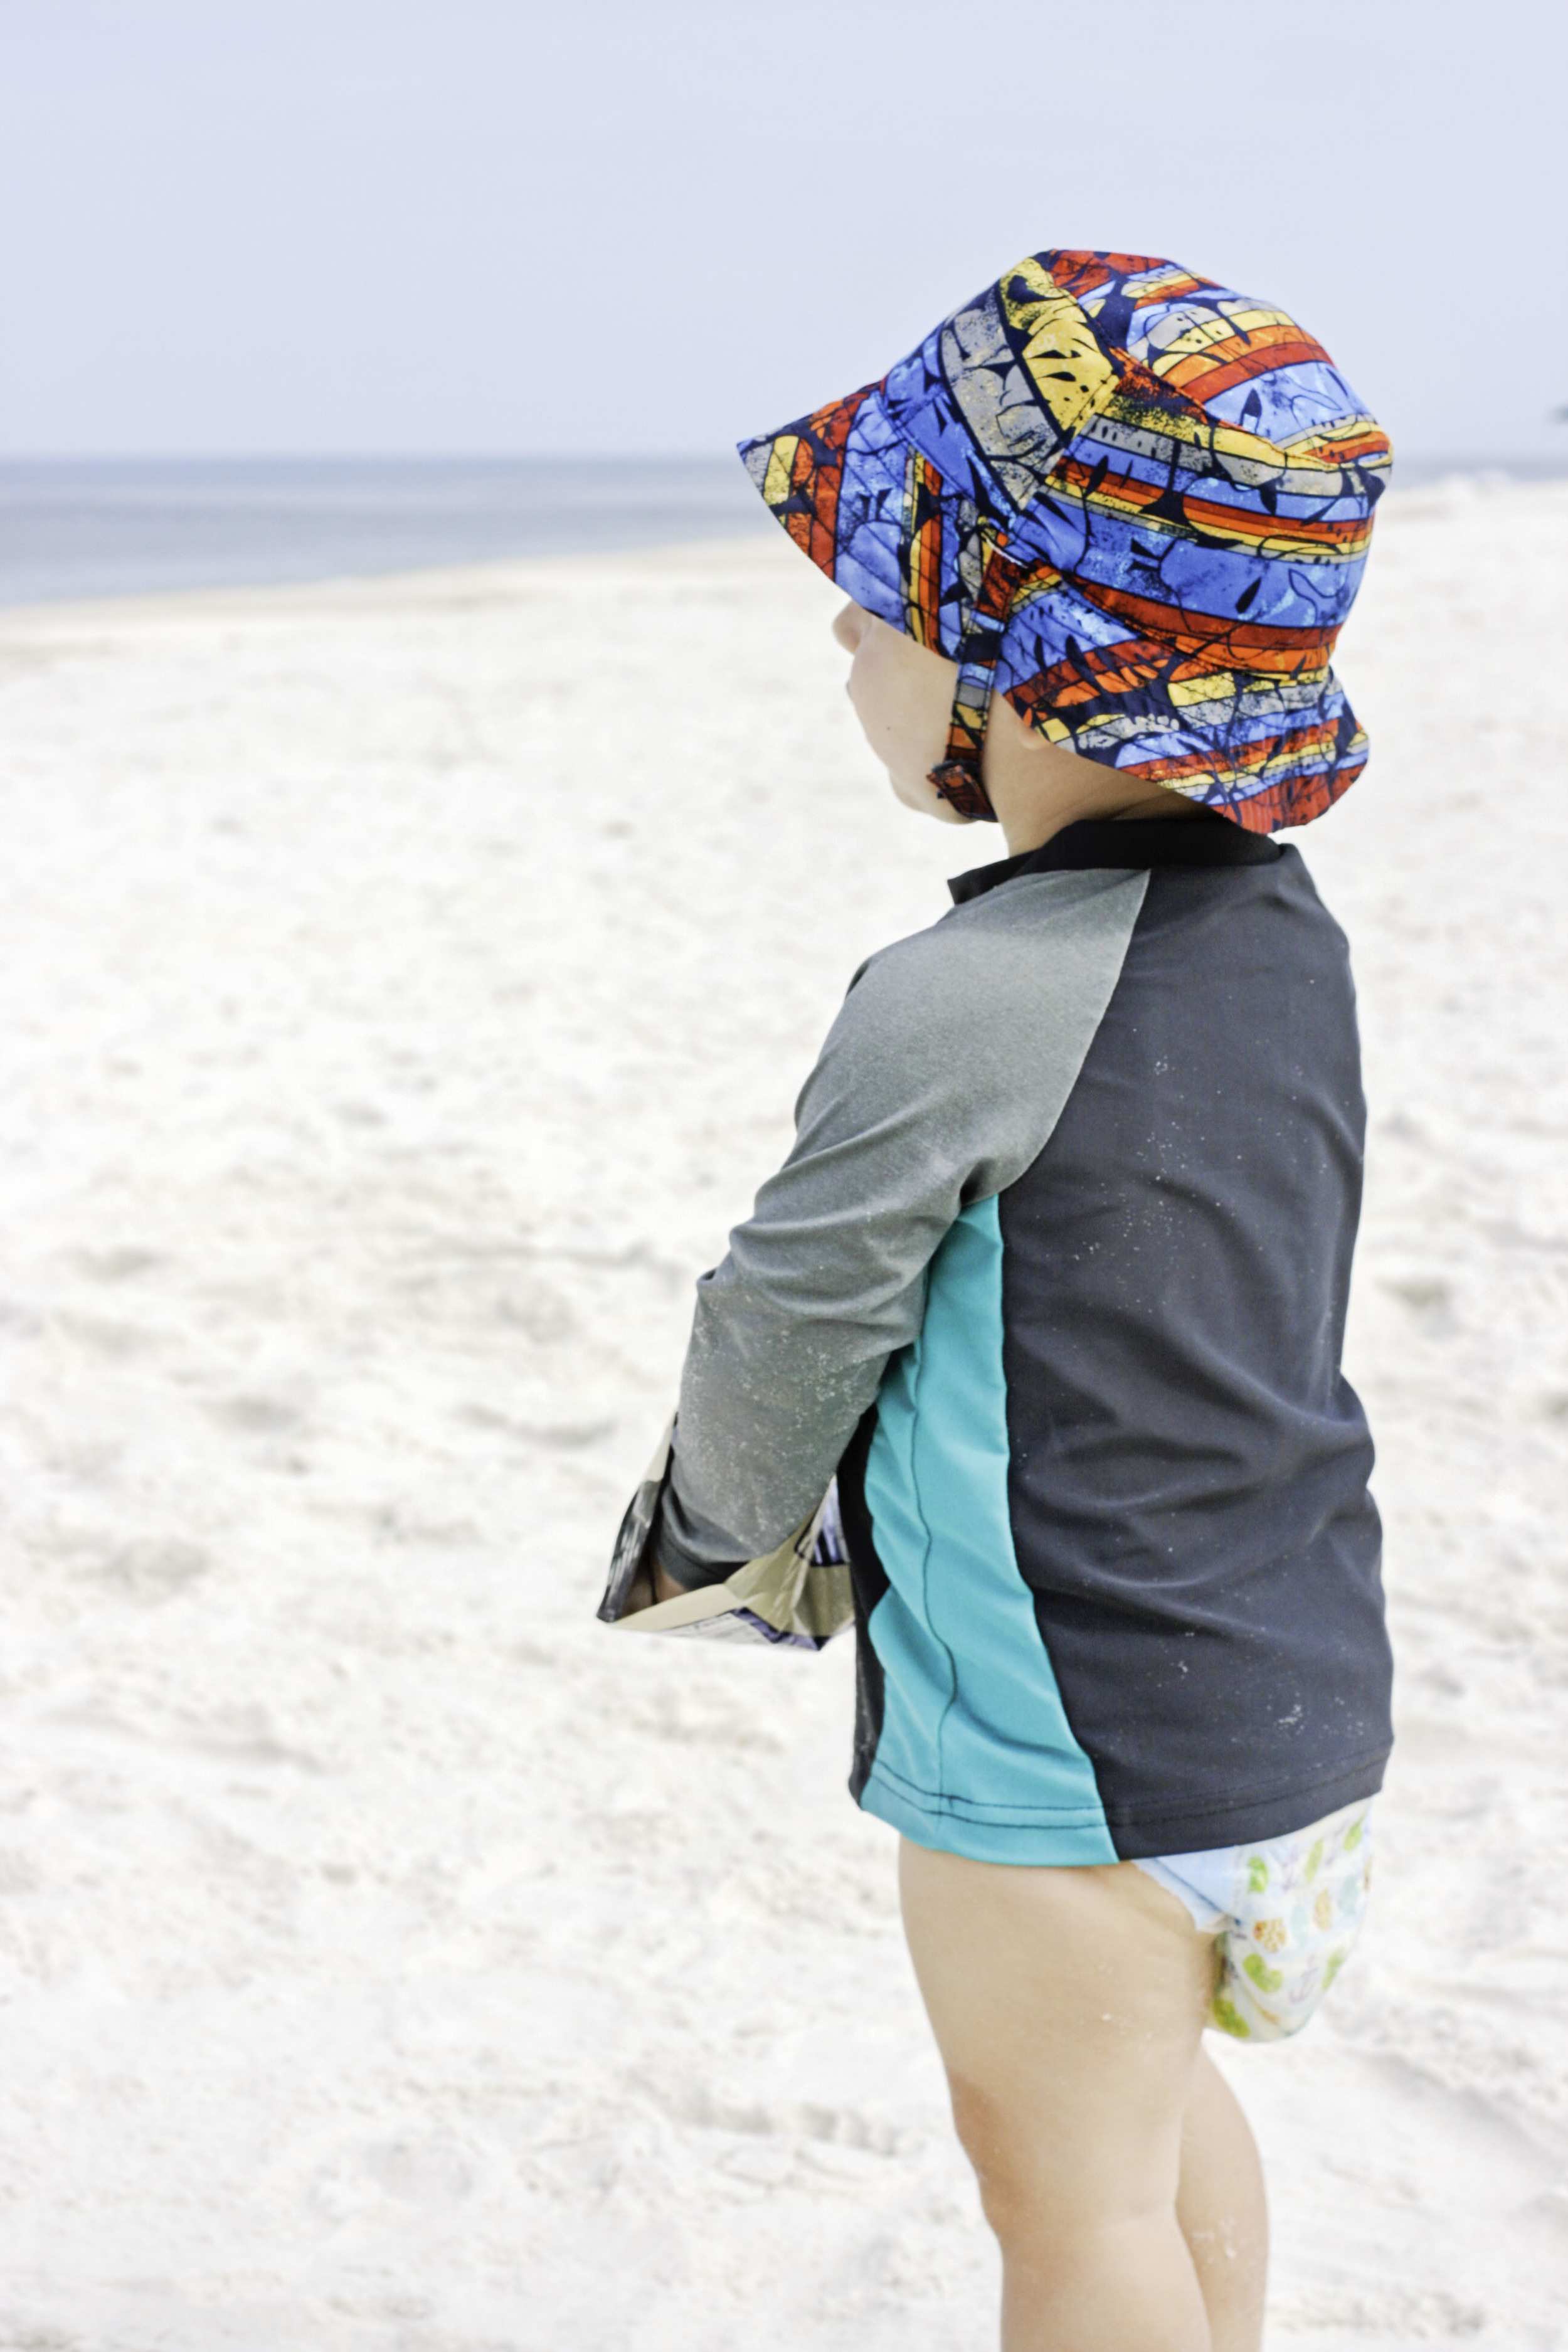 """Everett ate so much Pirate's Booty during beach week. He kept crying and asking for """"more boooooty!!!"""""""